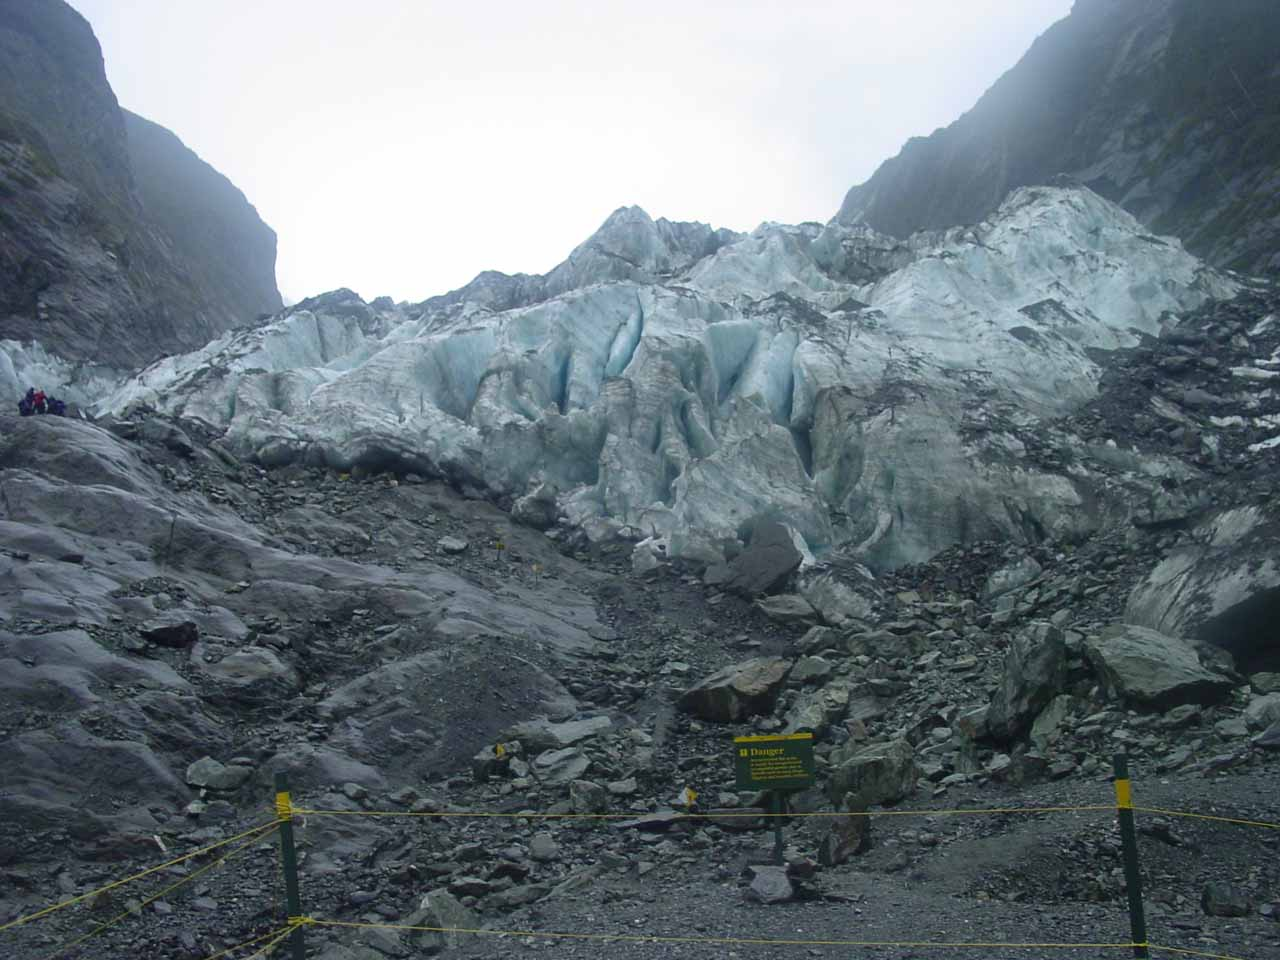 At the roped off terminus of the Franz Josef Glacier in November 2004